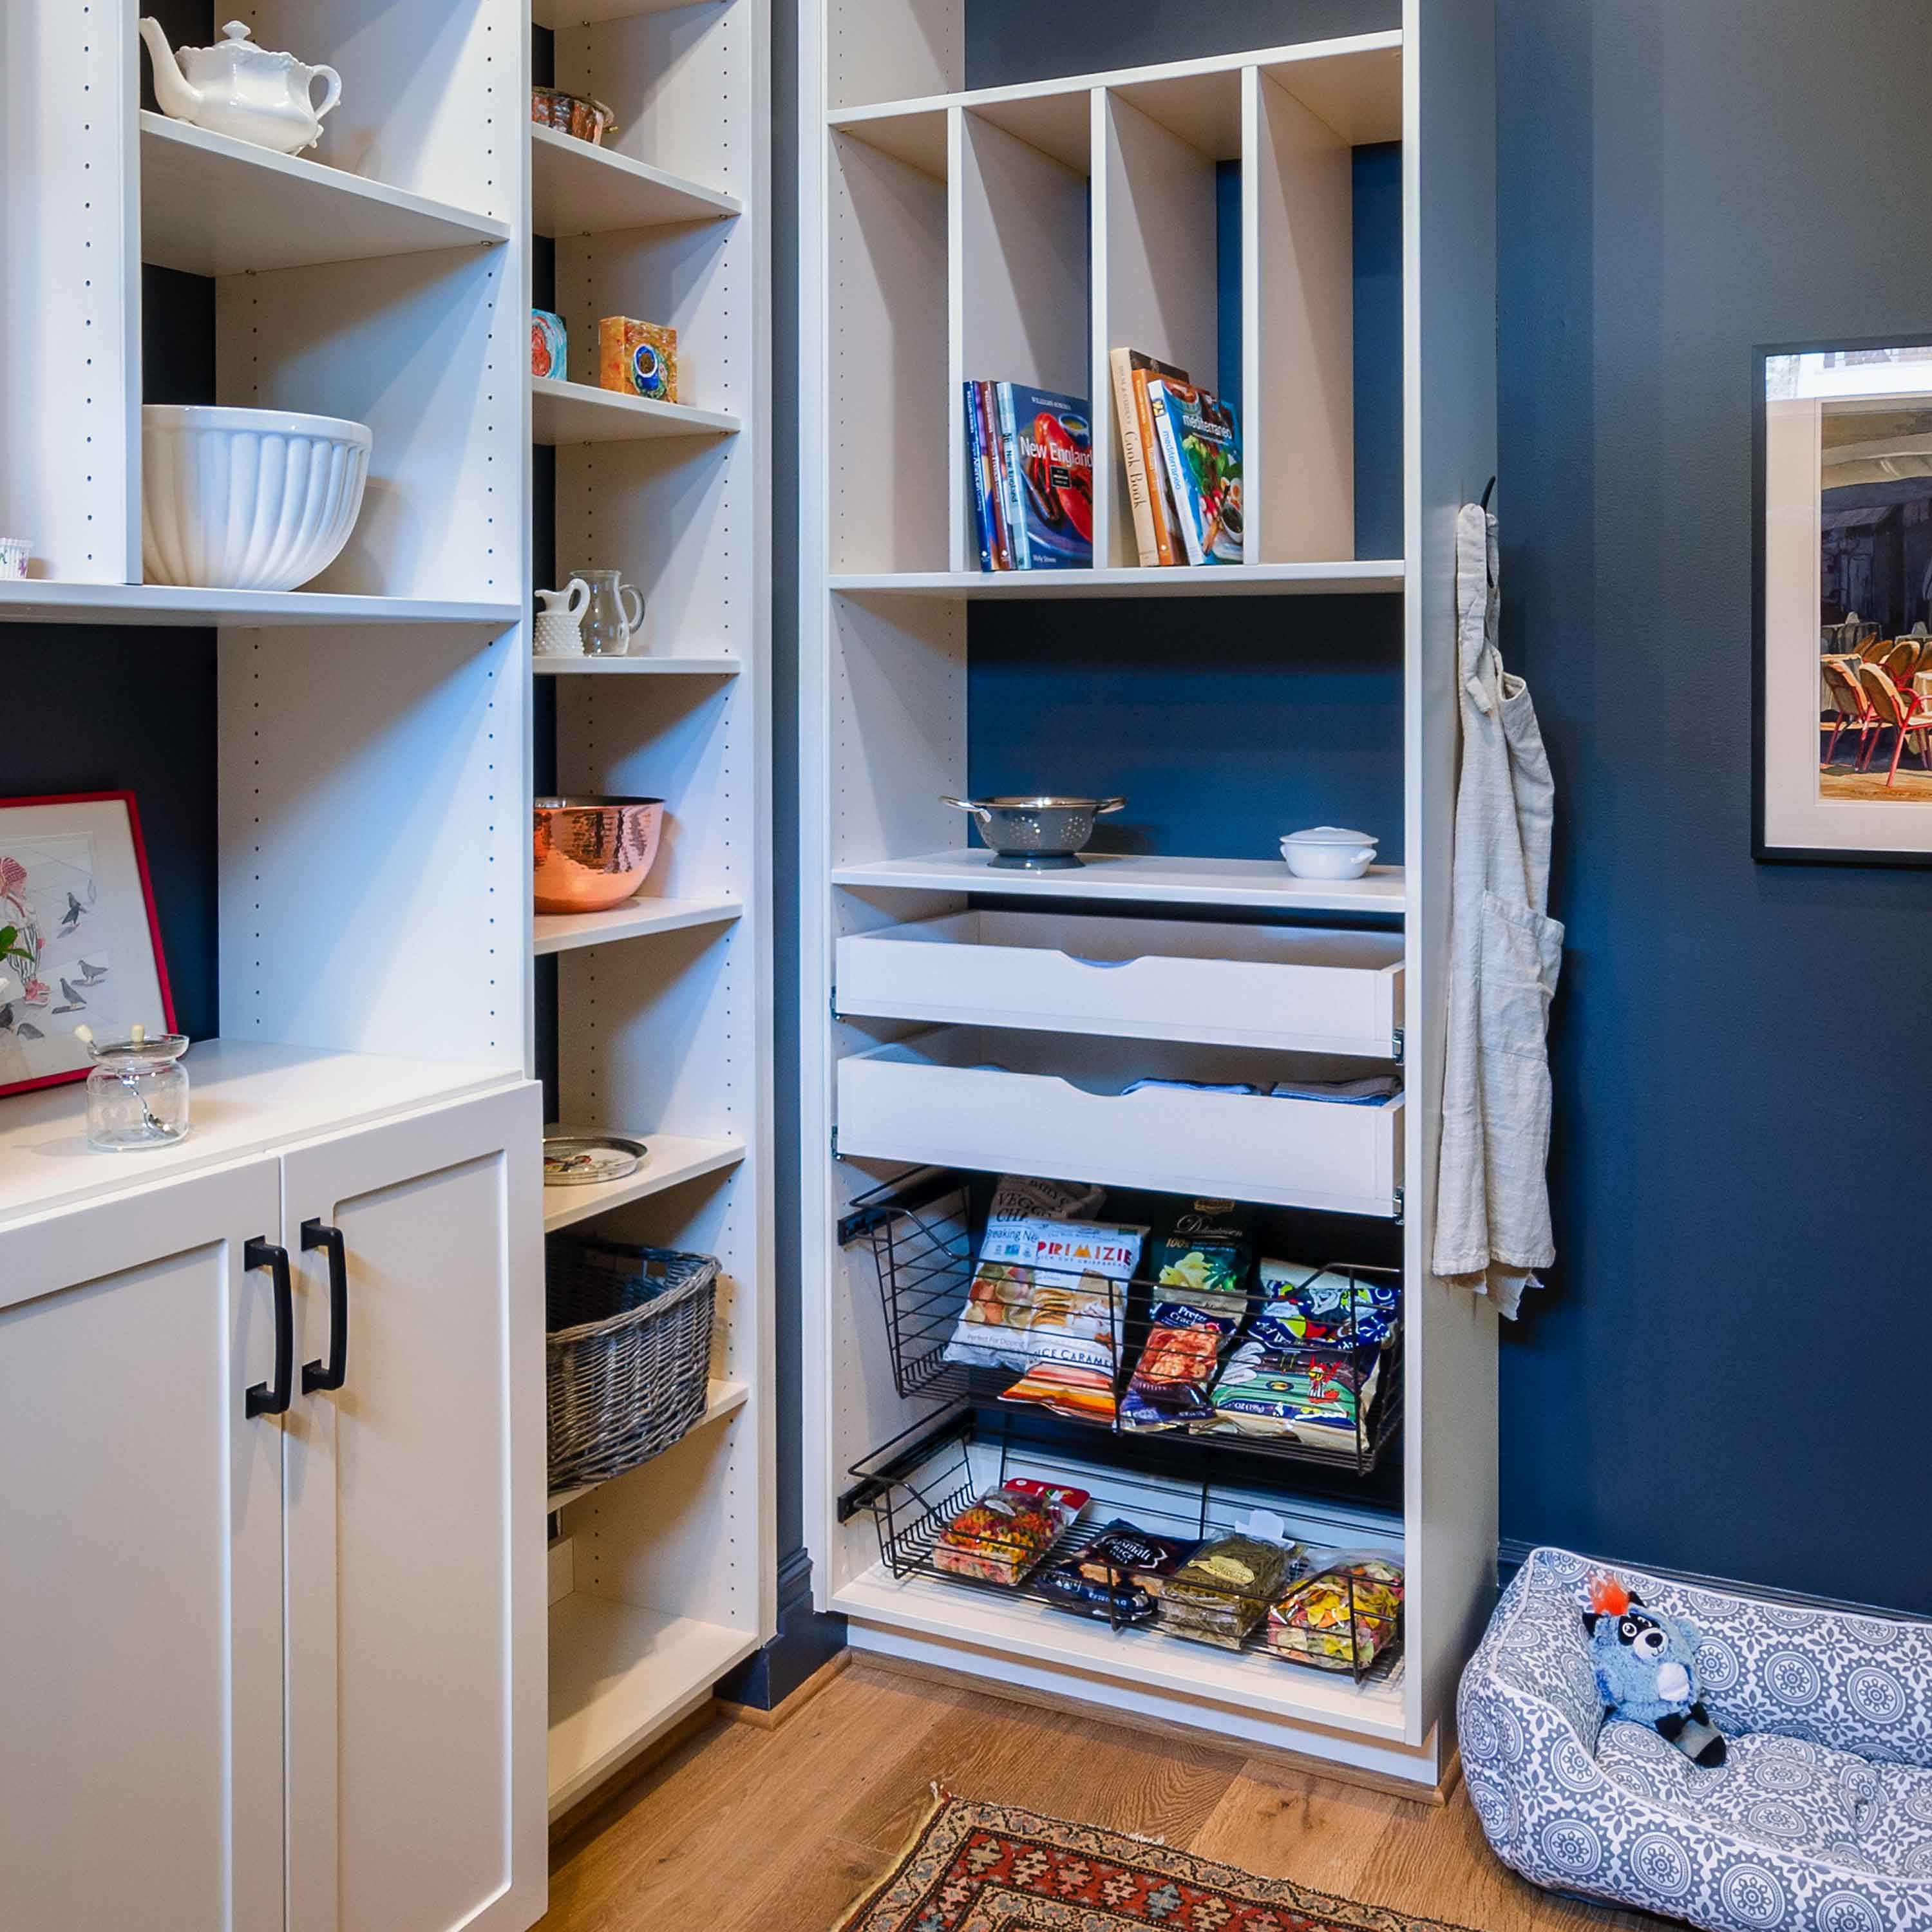 pantry closet with blue walls